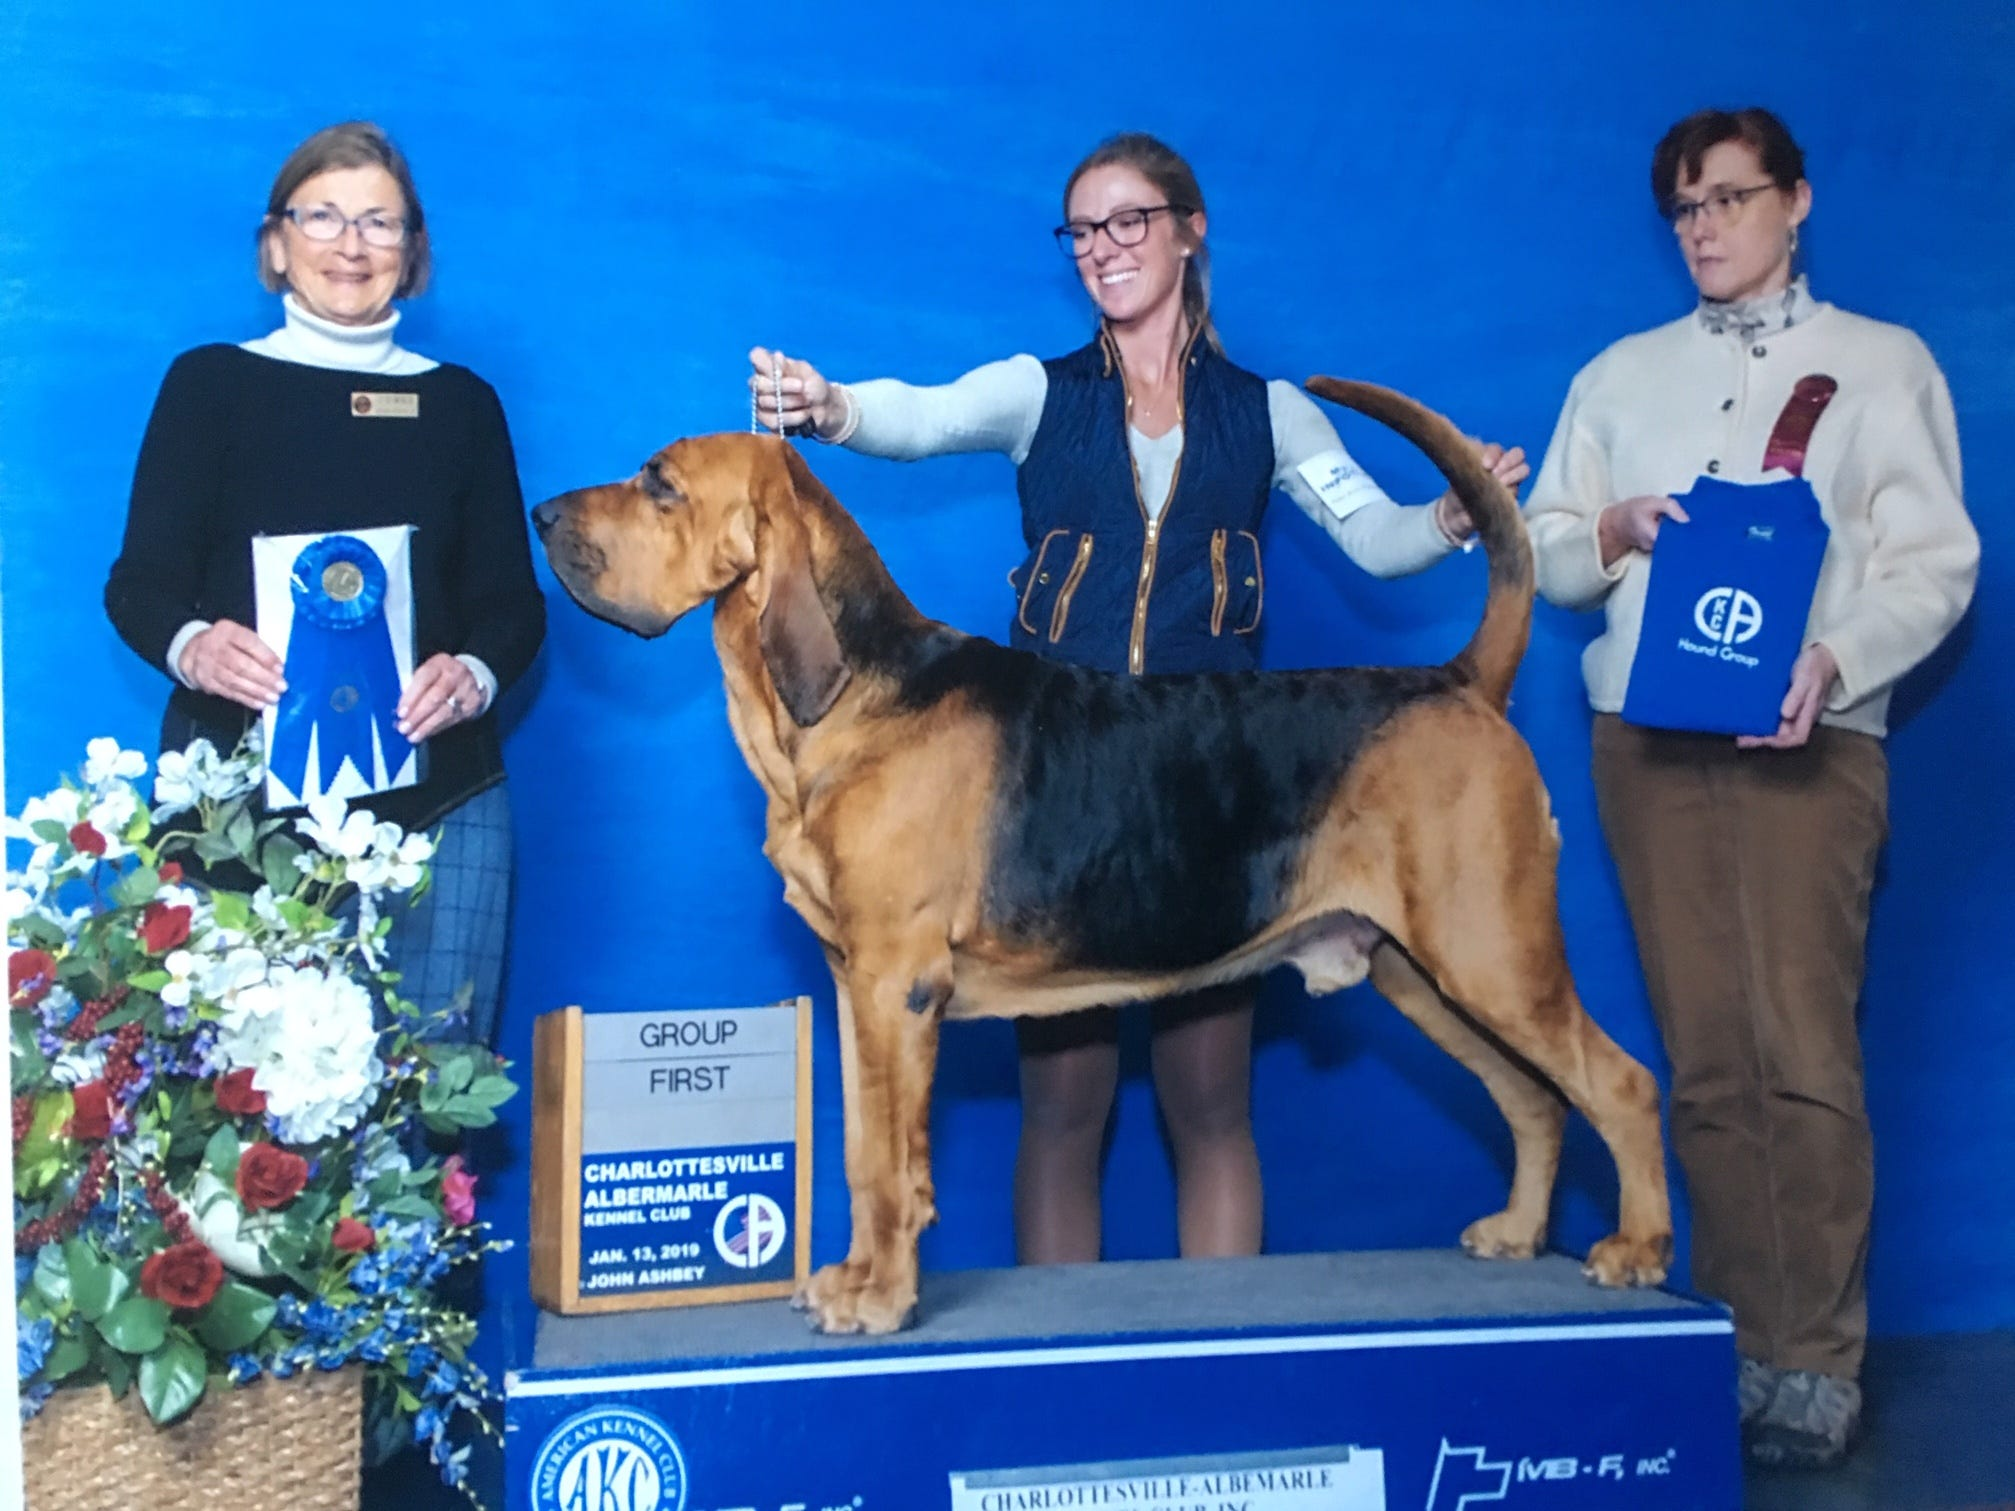 Owen, a bloodhound owned by Rick and Stacie Shriver of Bear, won the Hound Group competition and competed in the Best in Show category in Fredericksburg, Va., in January 2019.